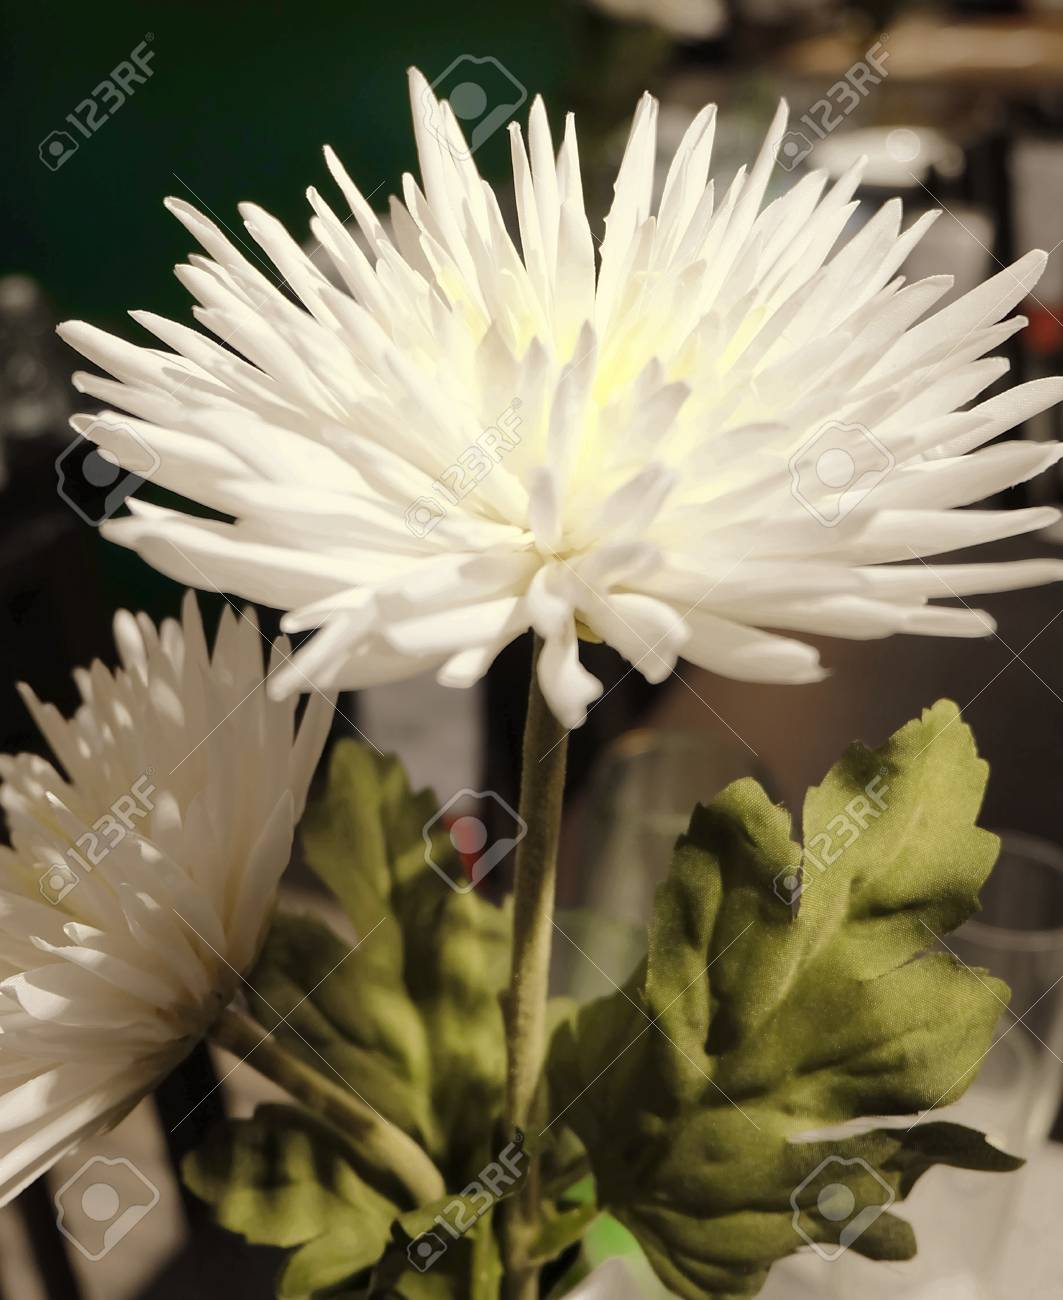 Pretty white artificial chrysanthemum flower with green leaves pretty white artificial chrysanthemum flower with green leaves for home and office decoration without the care mightylinksfo